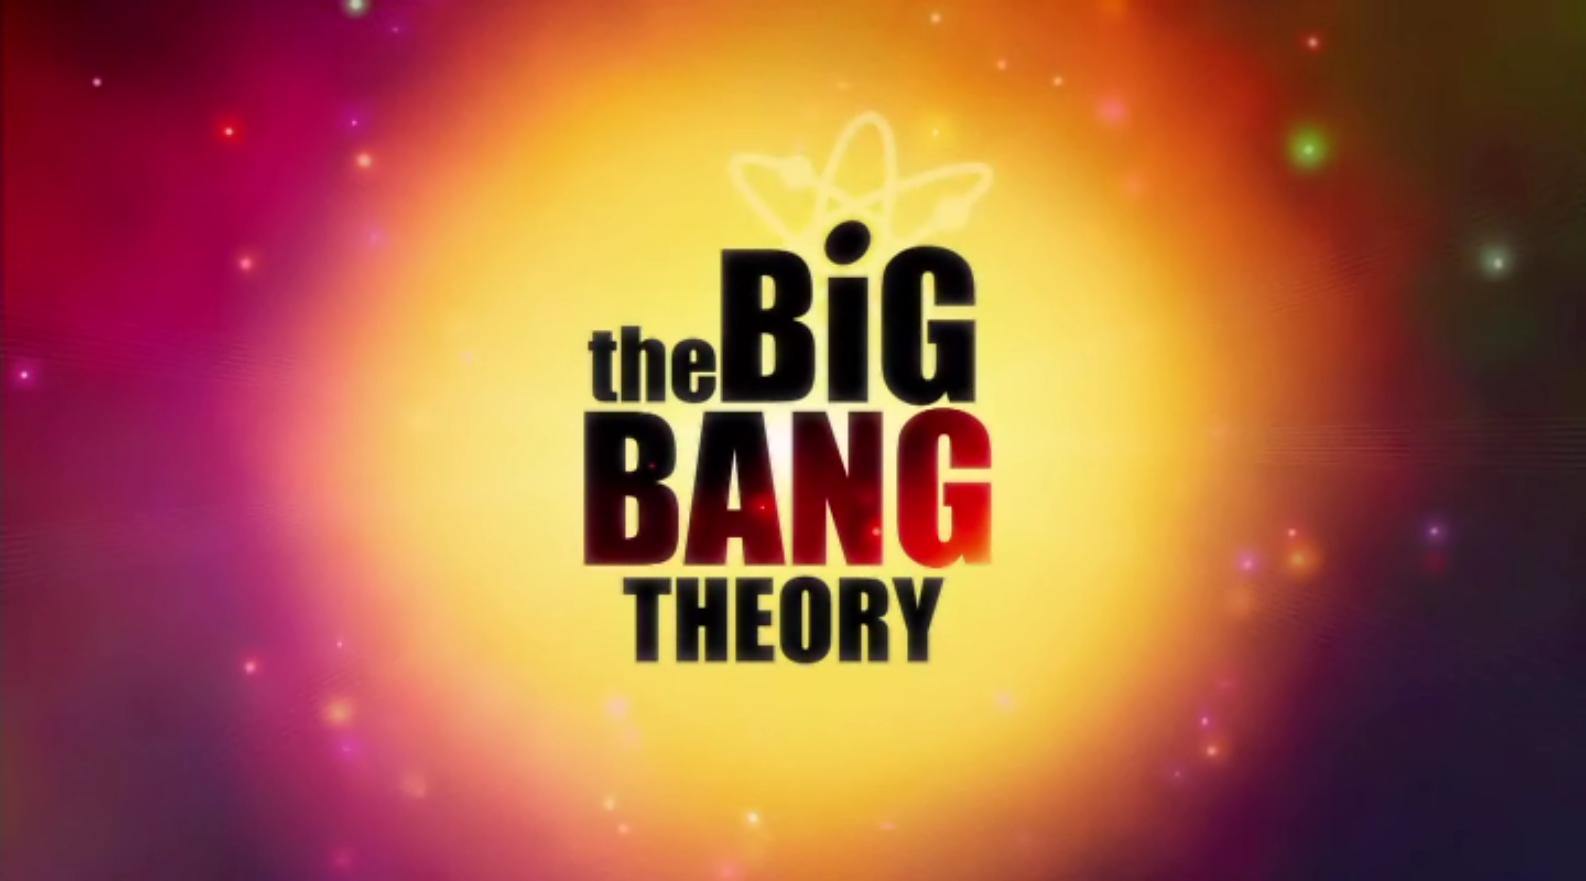 The Big Bang Theory-Title.jpg